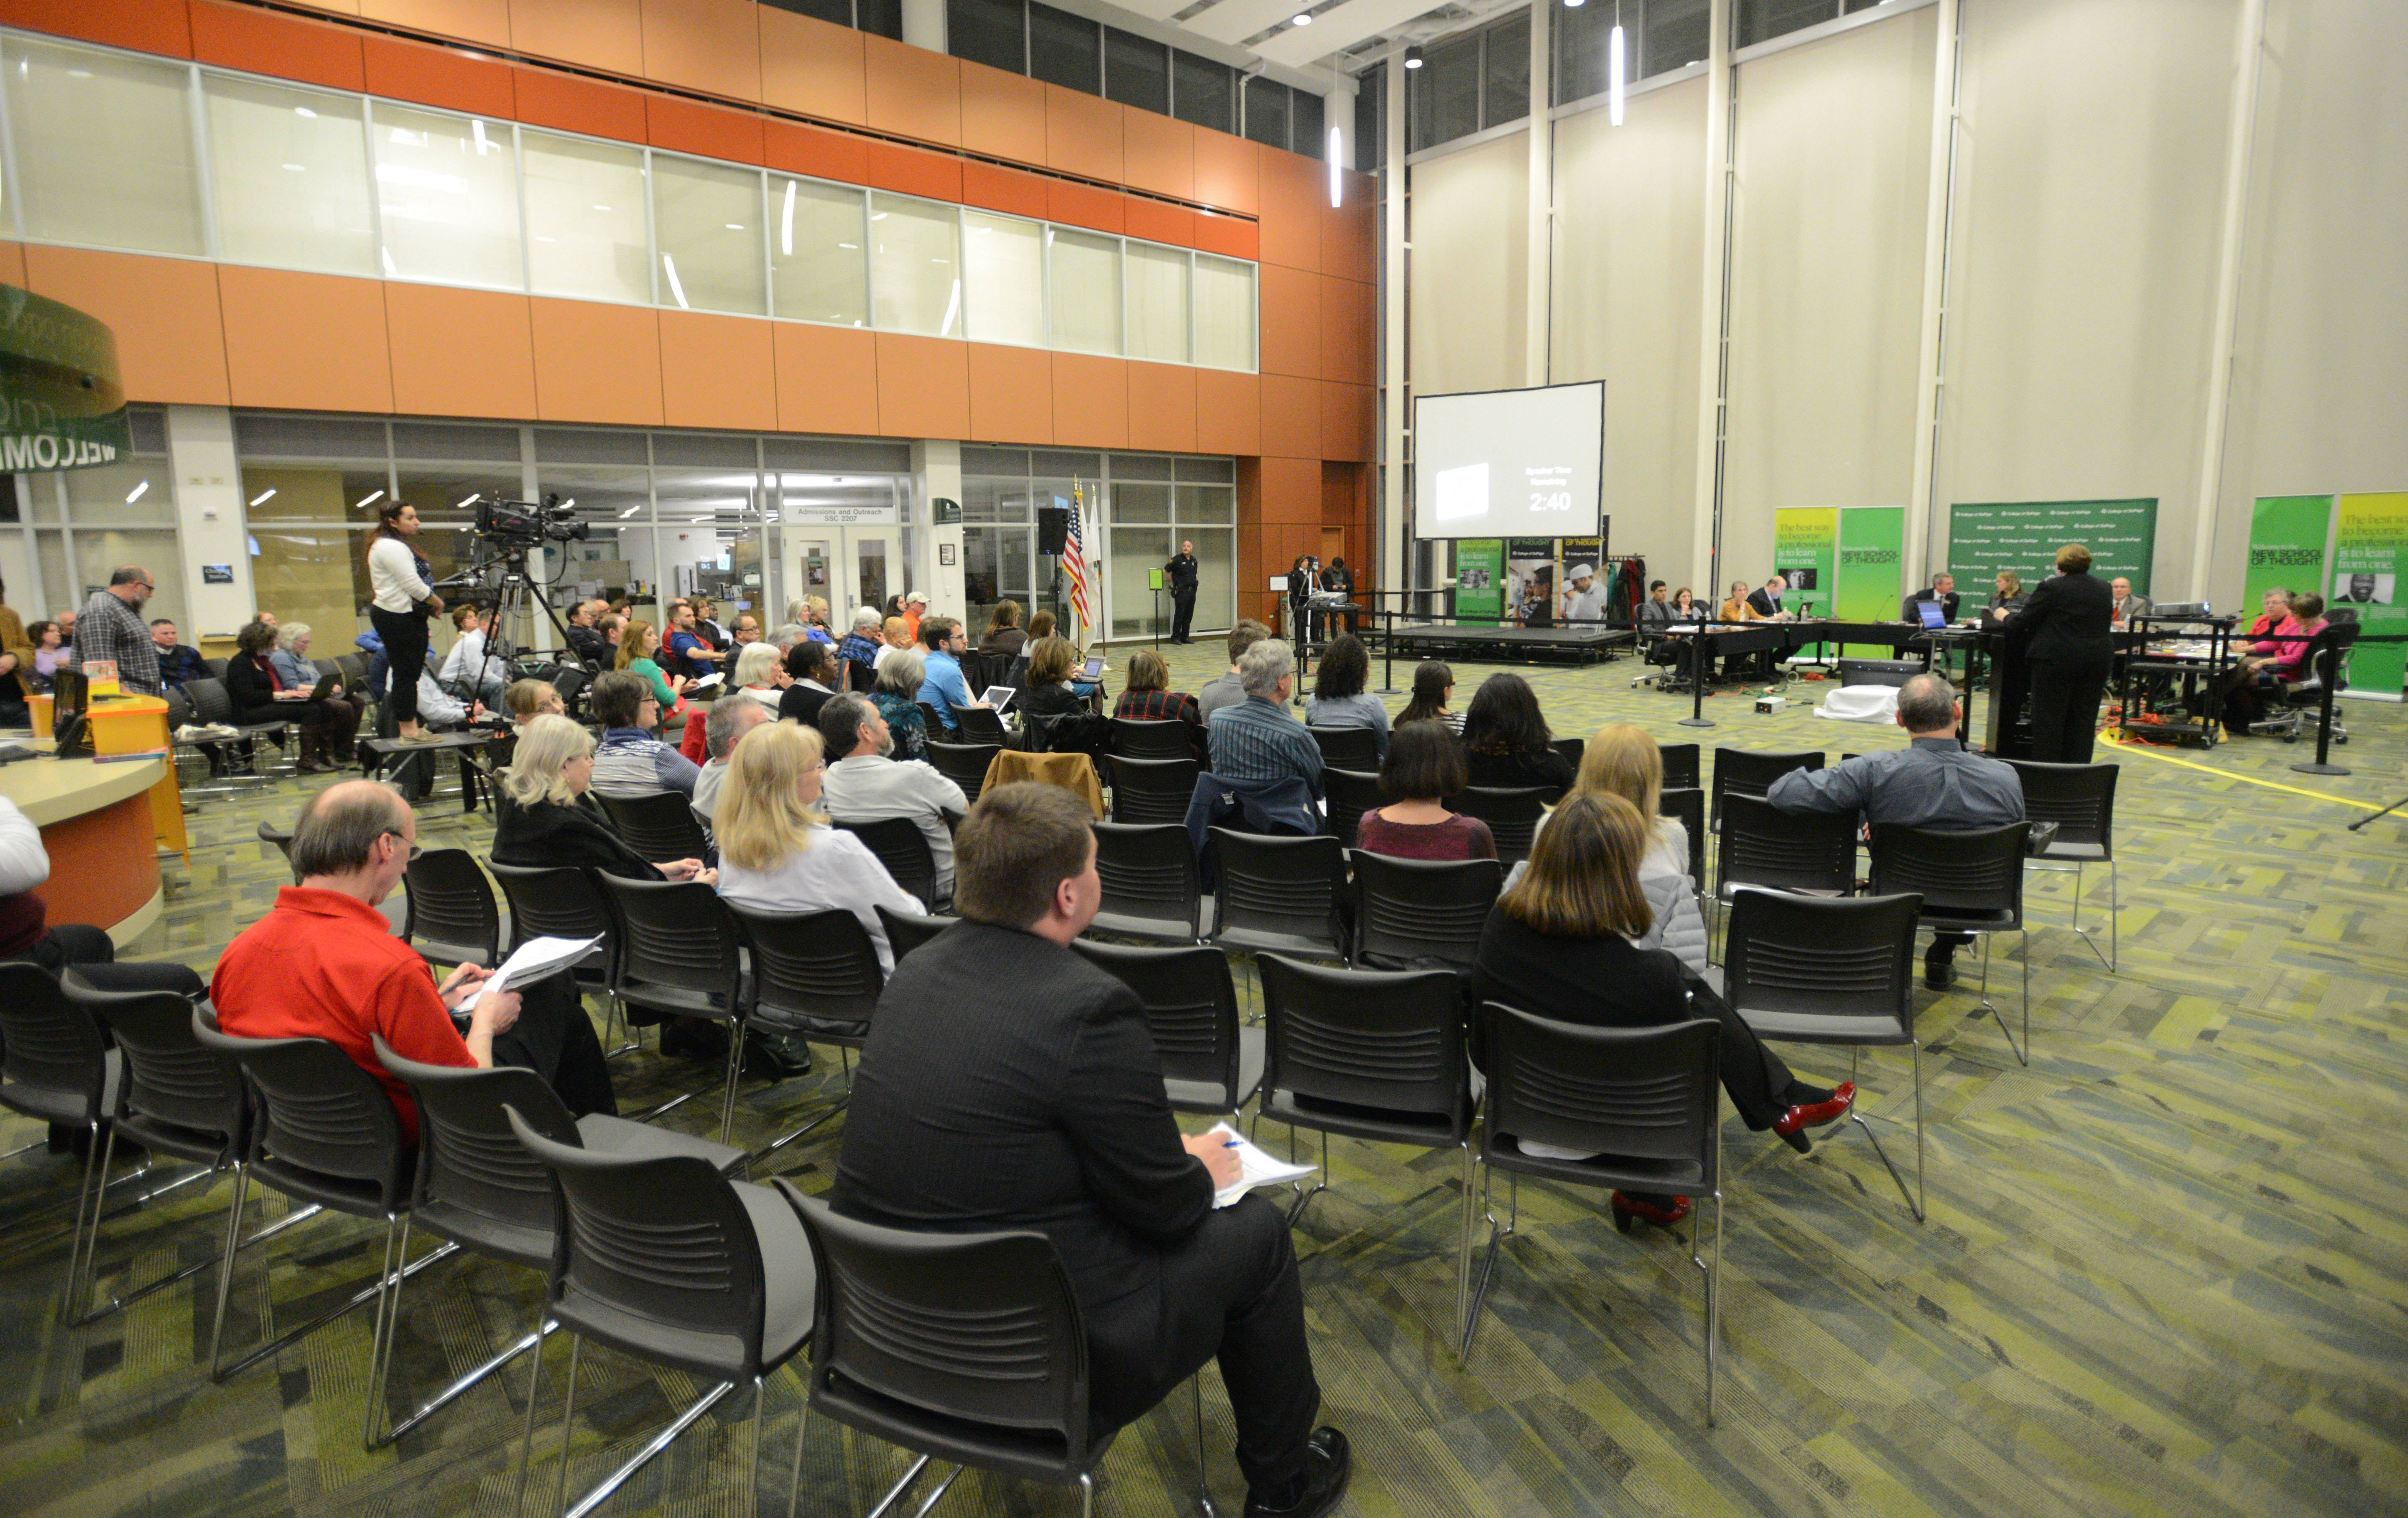 Paul Michna/pmichna@dailyherald.comWell over 100 people attended the College of DuPage Board meeting Thursday night. The board voted to hire a public relations firm despite the public opinion.